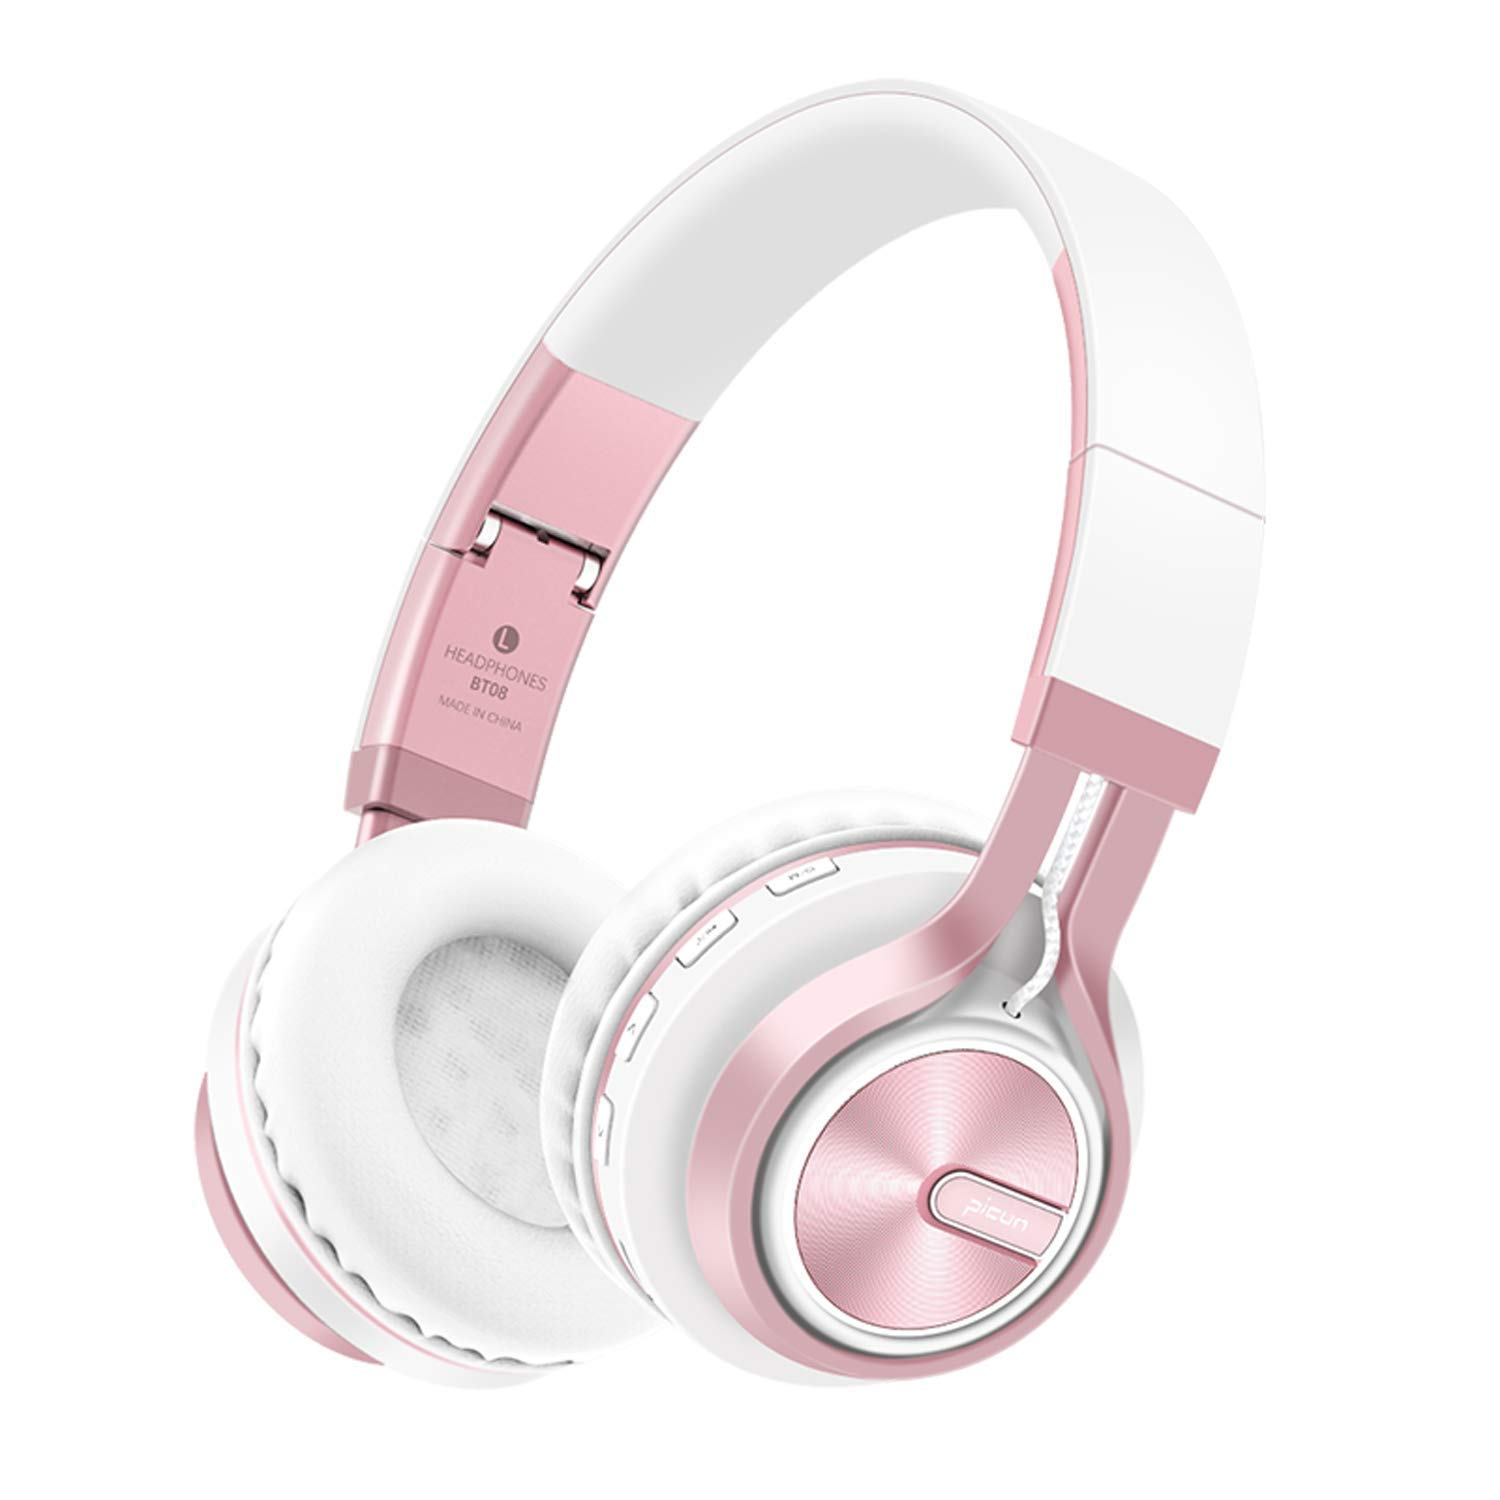 Bluetooth Headphones Over Ear, LAFEINA Wireless/Wired Noise Cancelling Headsets, Foldable Earphones with HD Microphone, Support TF Card for iPhone, PC, Phones (White/Rose Gold)